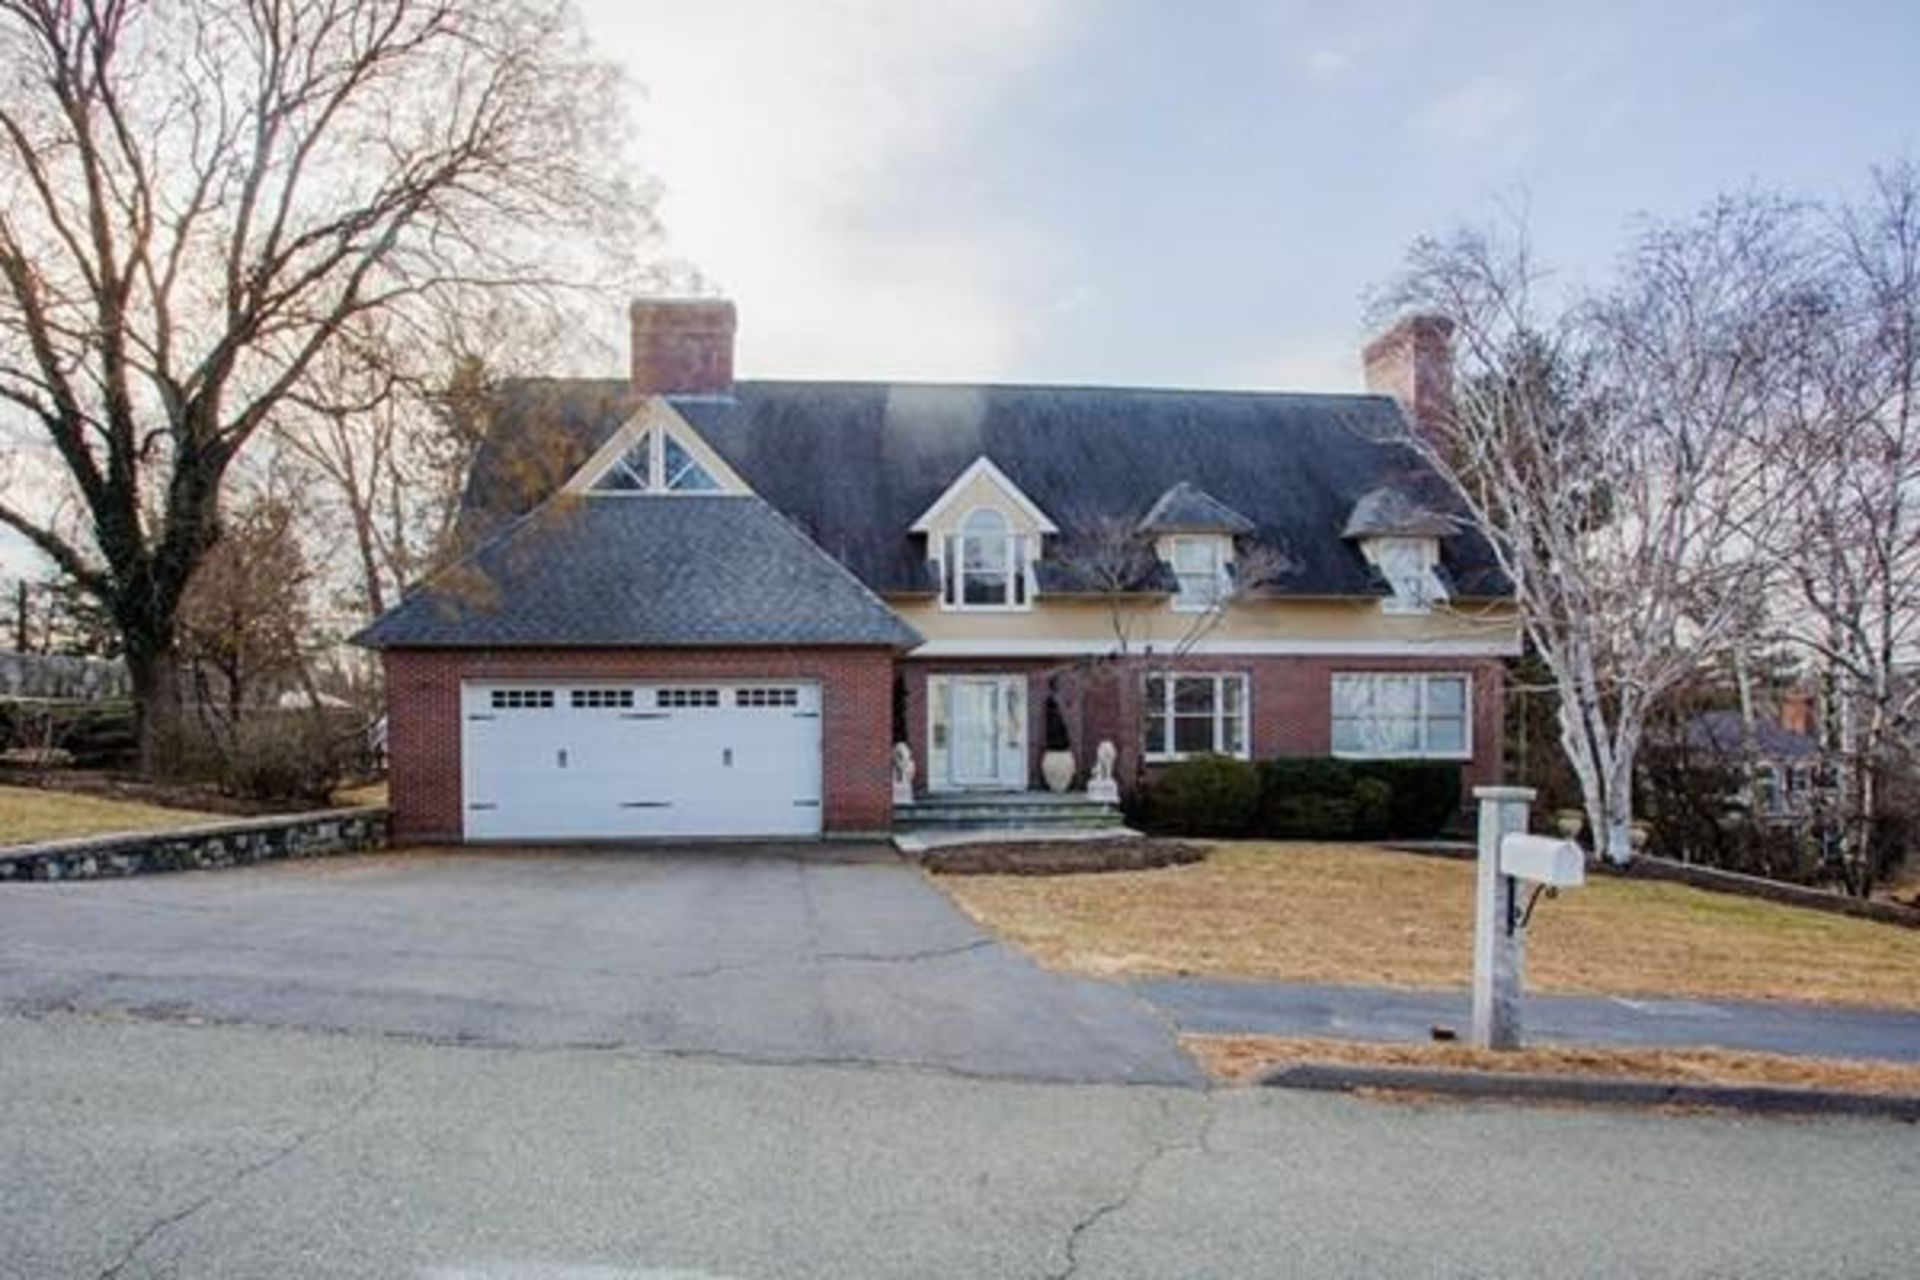 Saugus MA 01906 Hammersmith Village Estate-Like Home For Sale